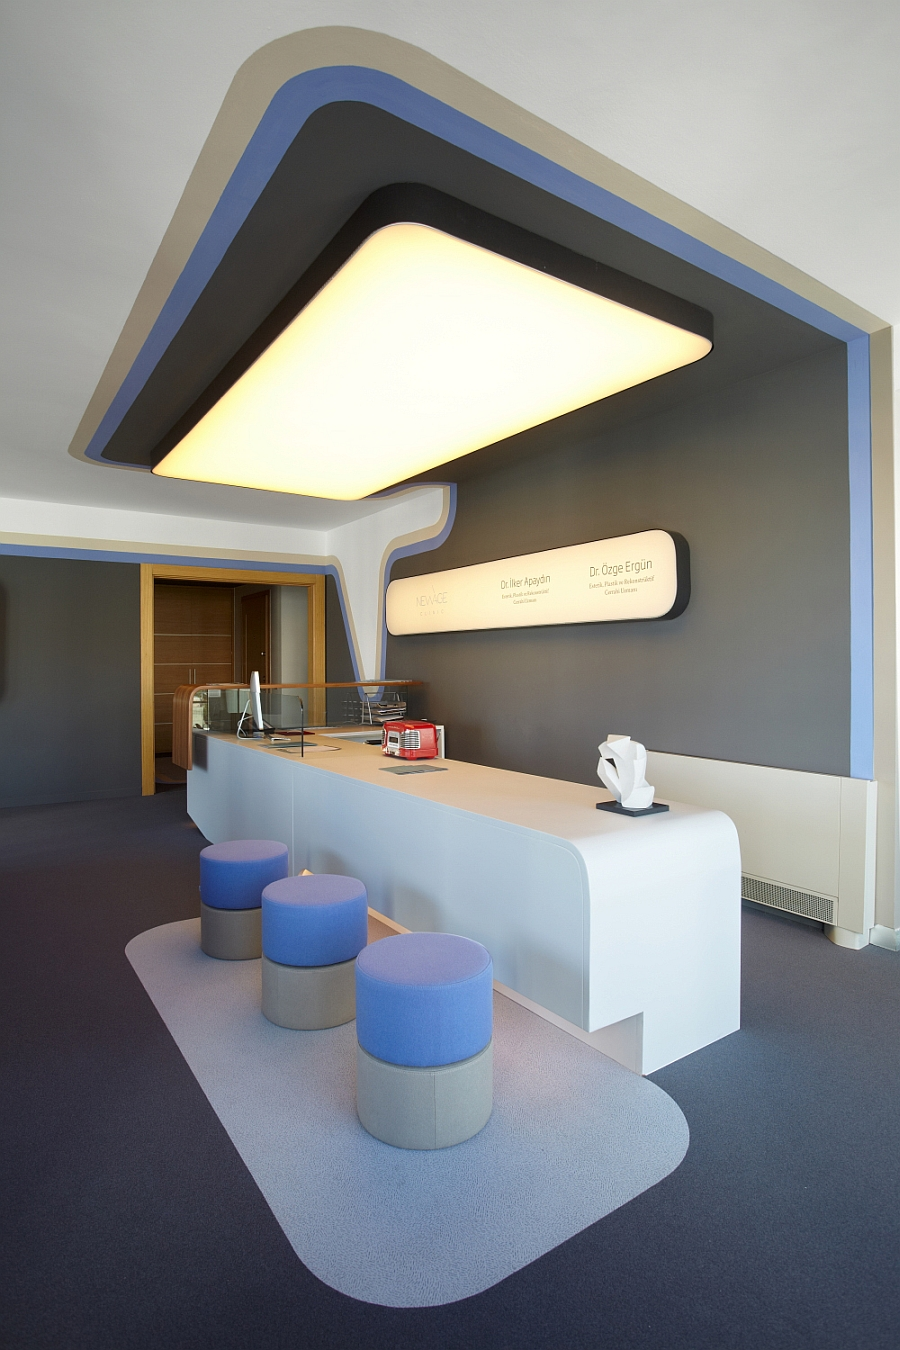 Specially crafted reception desk welcomes the clientele at the clinic